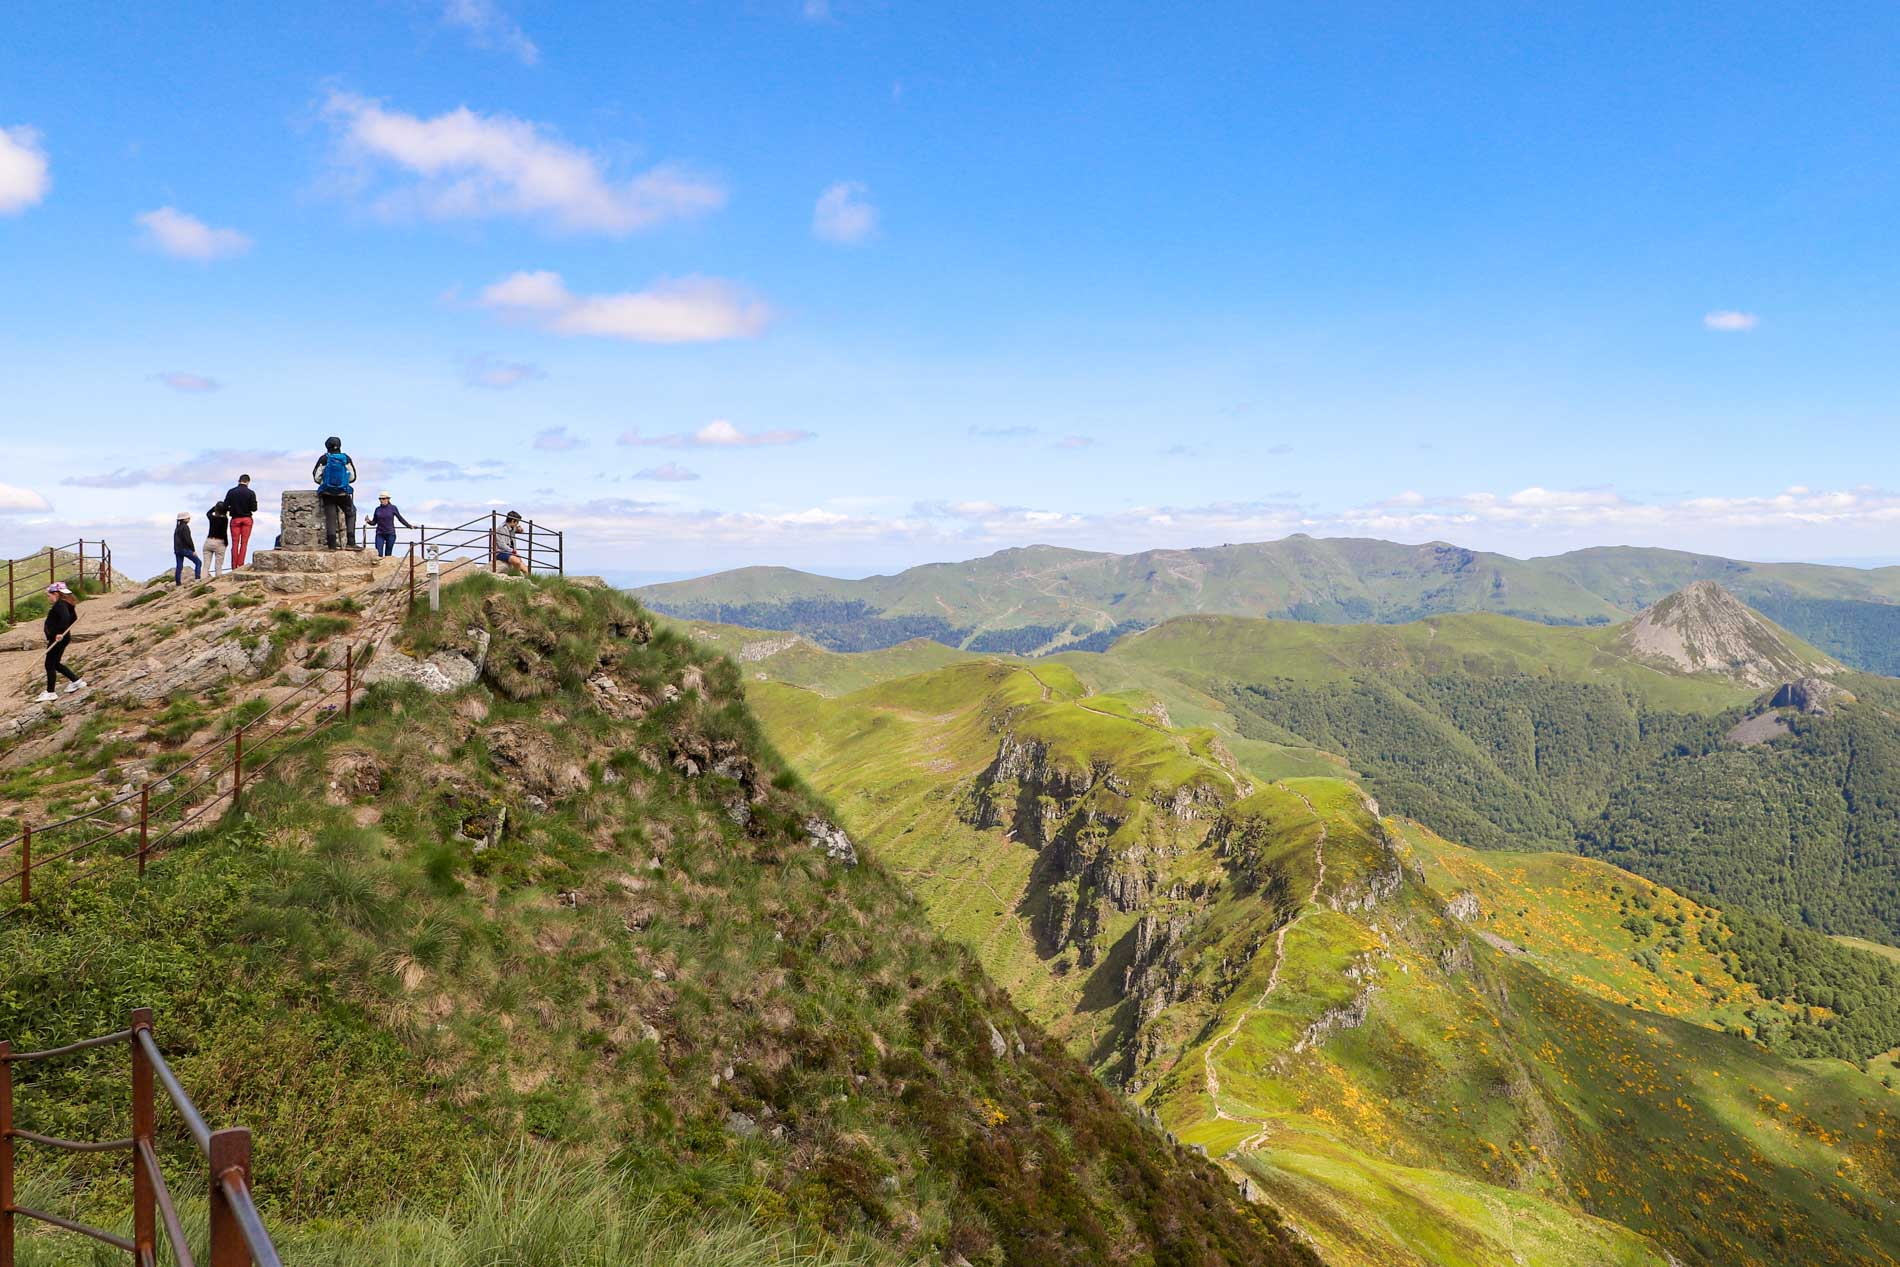 sommet-du-puy-mary-cantal